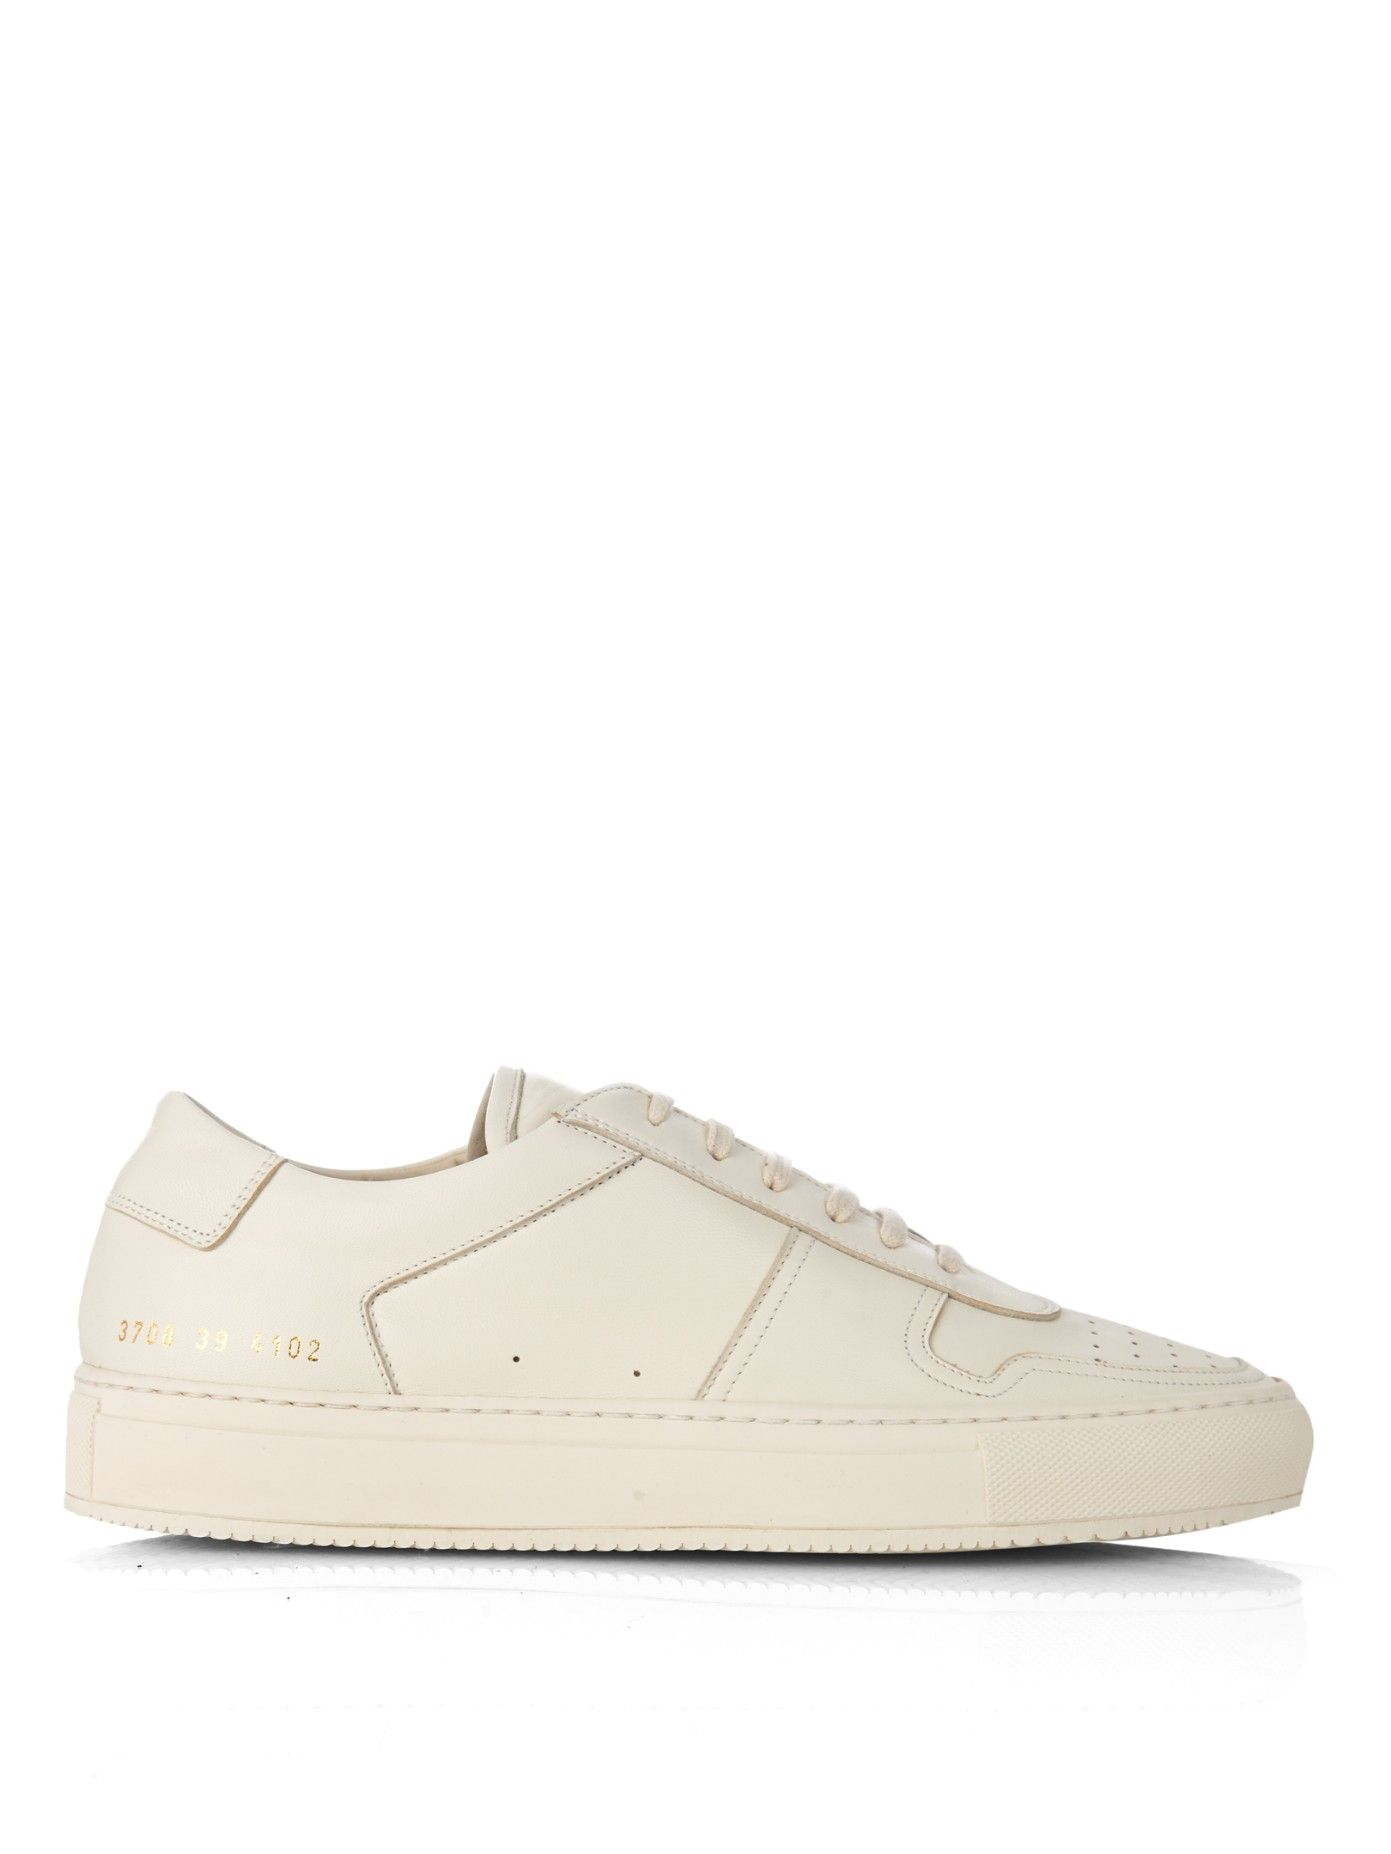 877fbfbb367f6 Bball leather low-top trainers